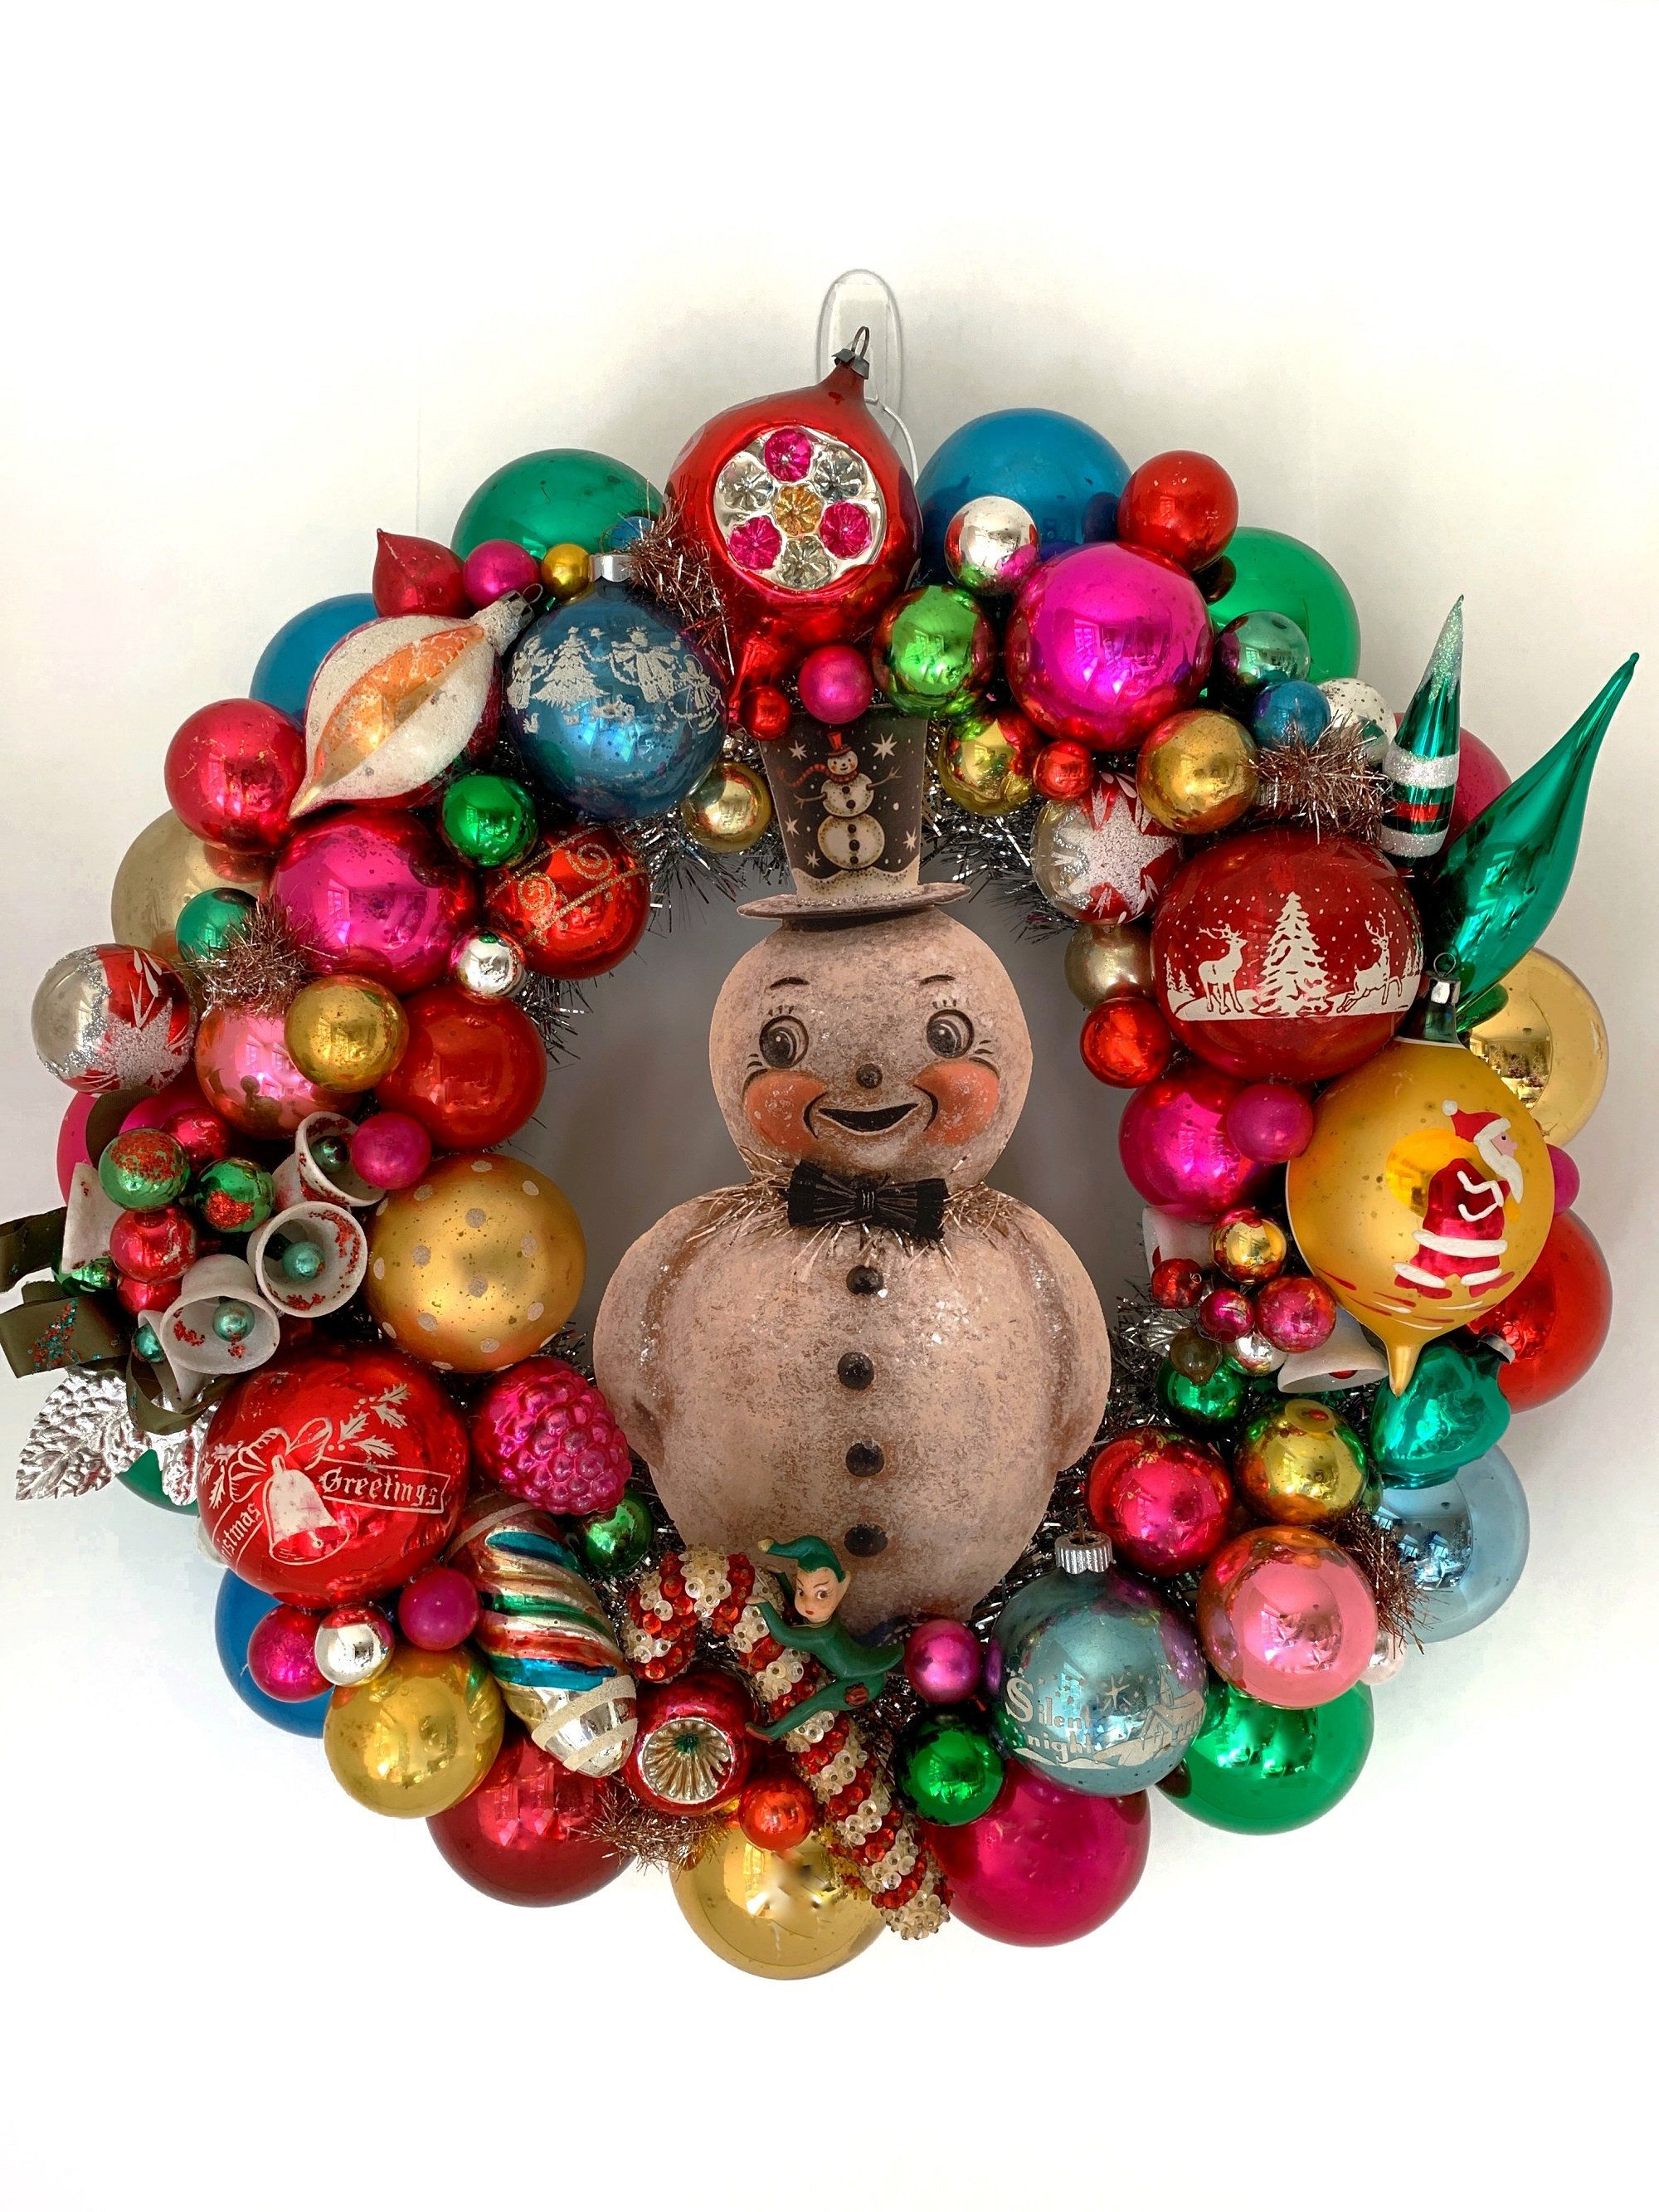 16 5vintage Ornament Wreath Johanna Parker Snowman Etsy Vintage Ornament Wreath Christmas Ornament Wreath Retro Christmas Decorations